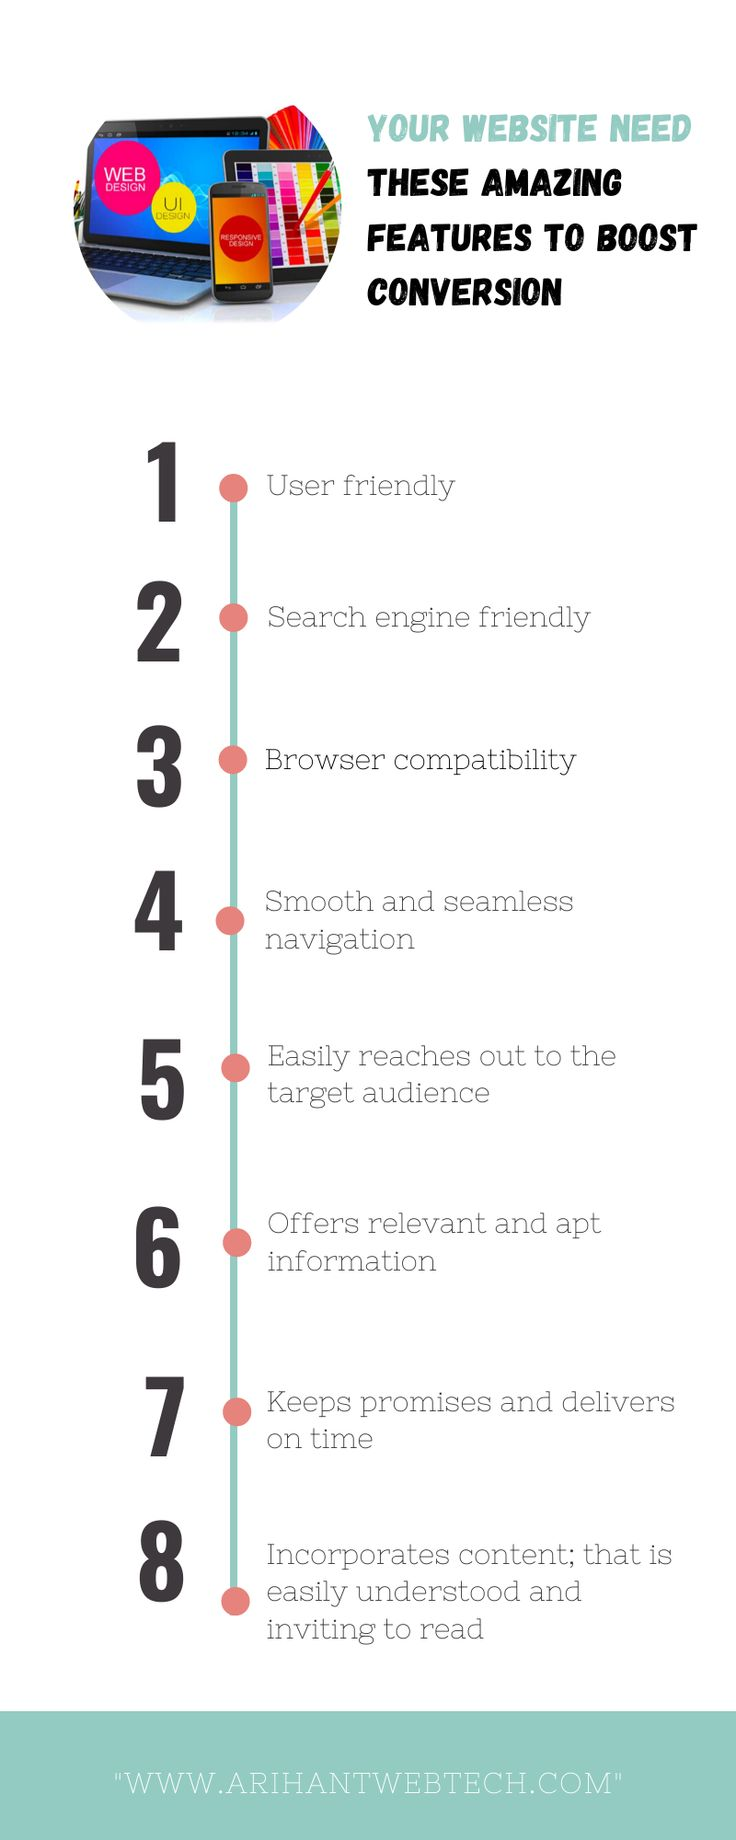 Your website need these Amazing features to Boost Conversion